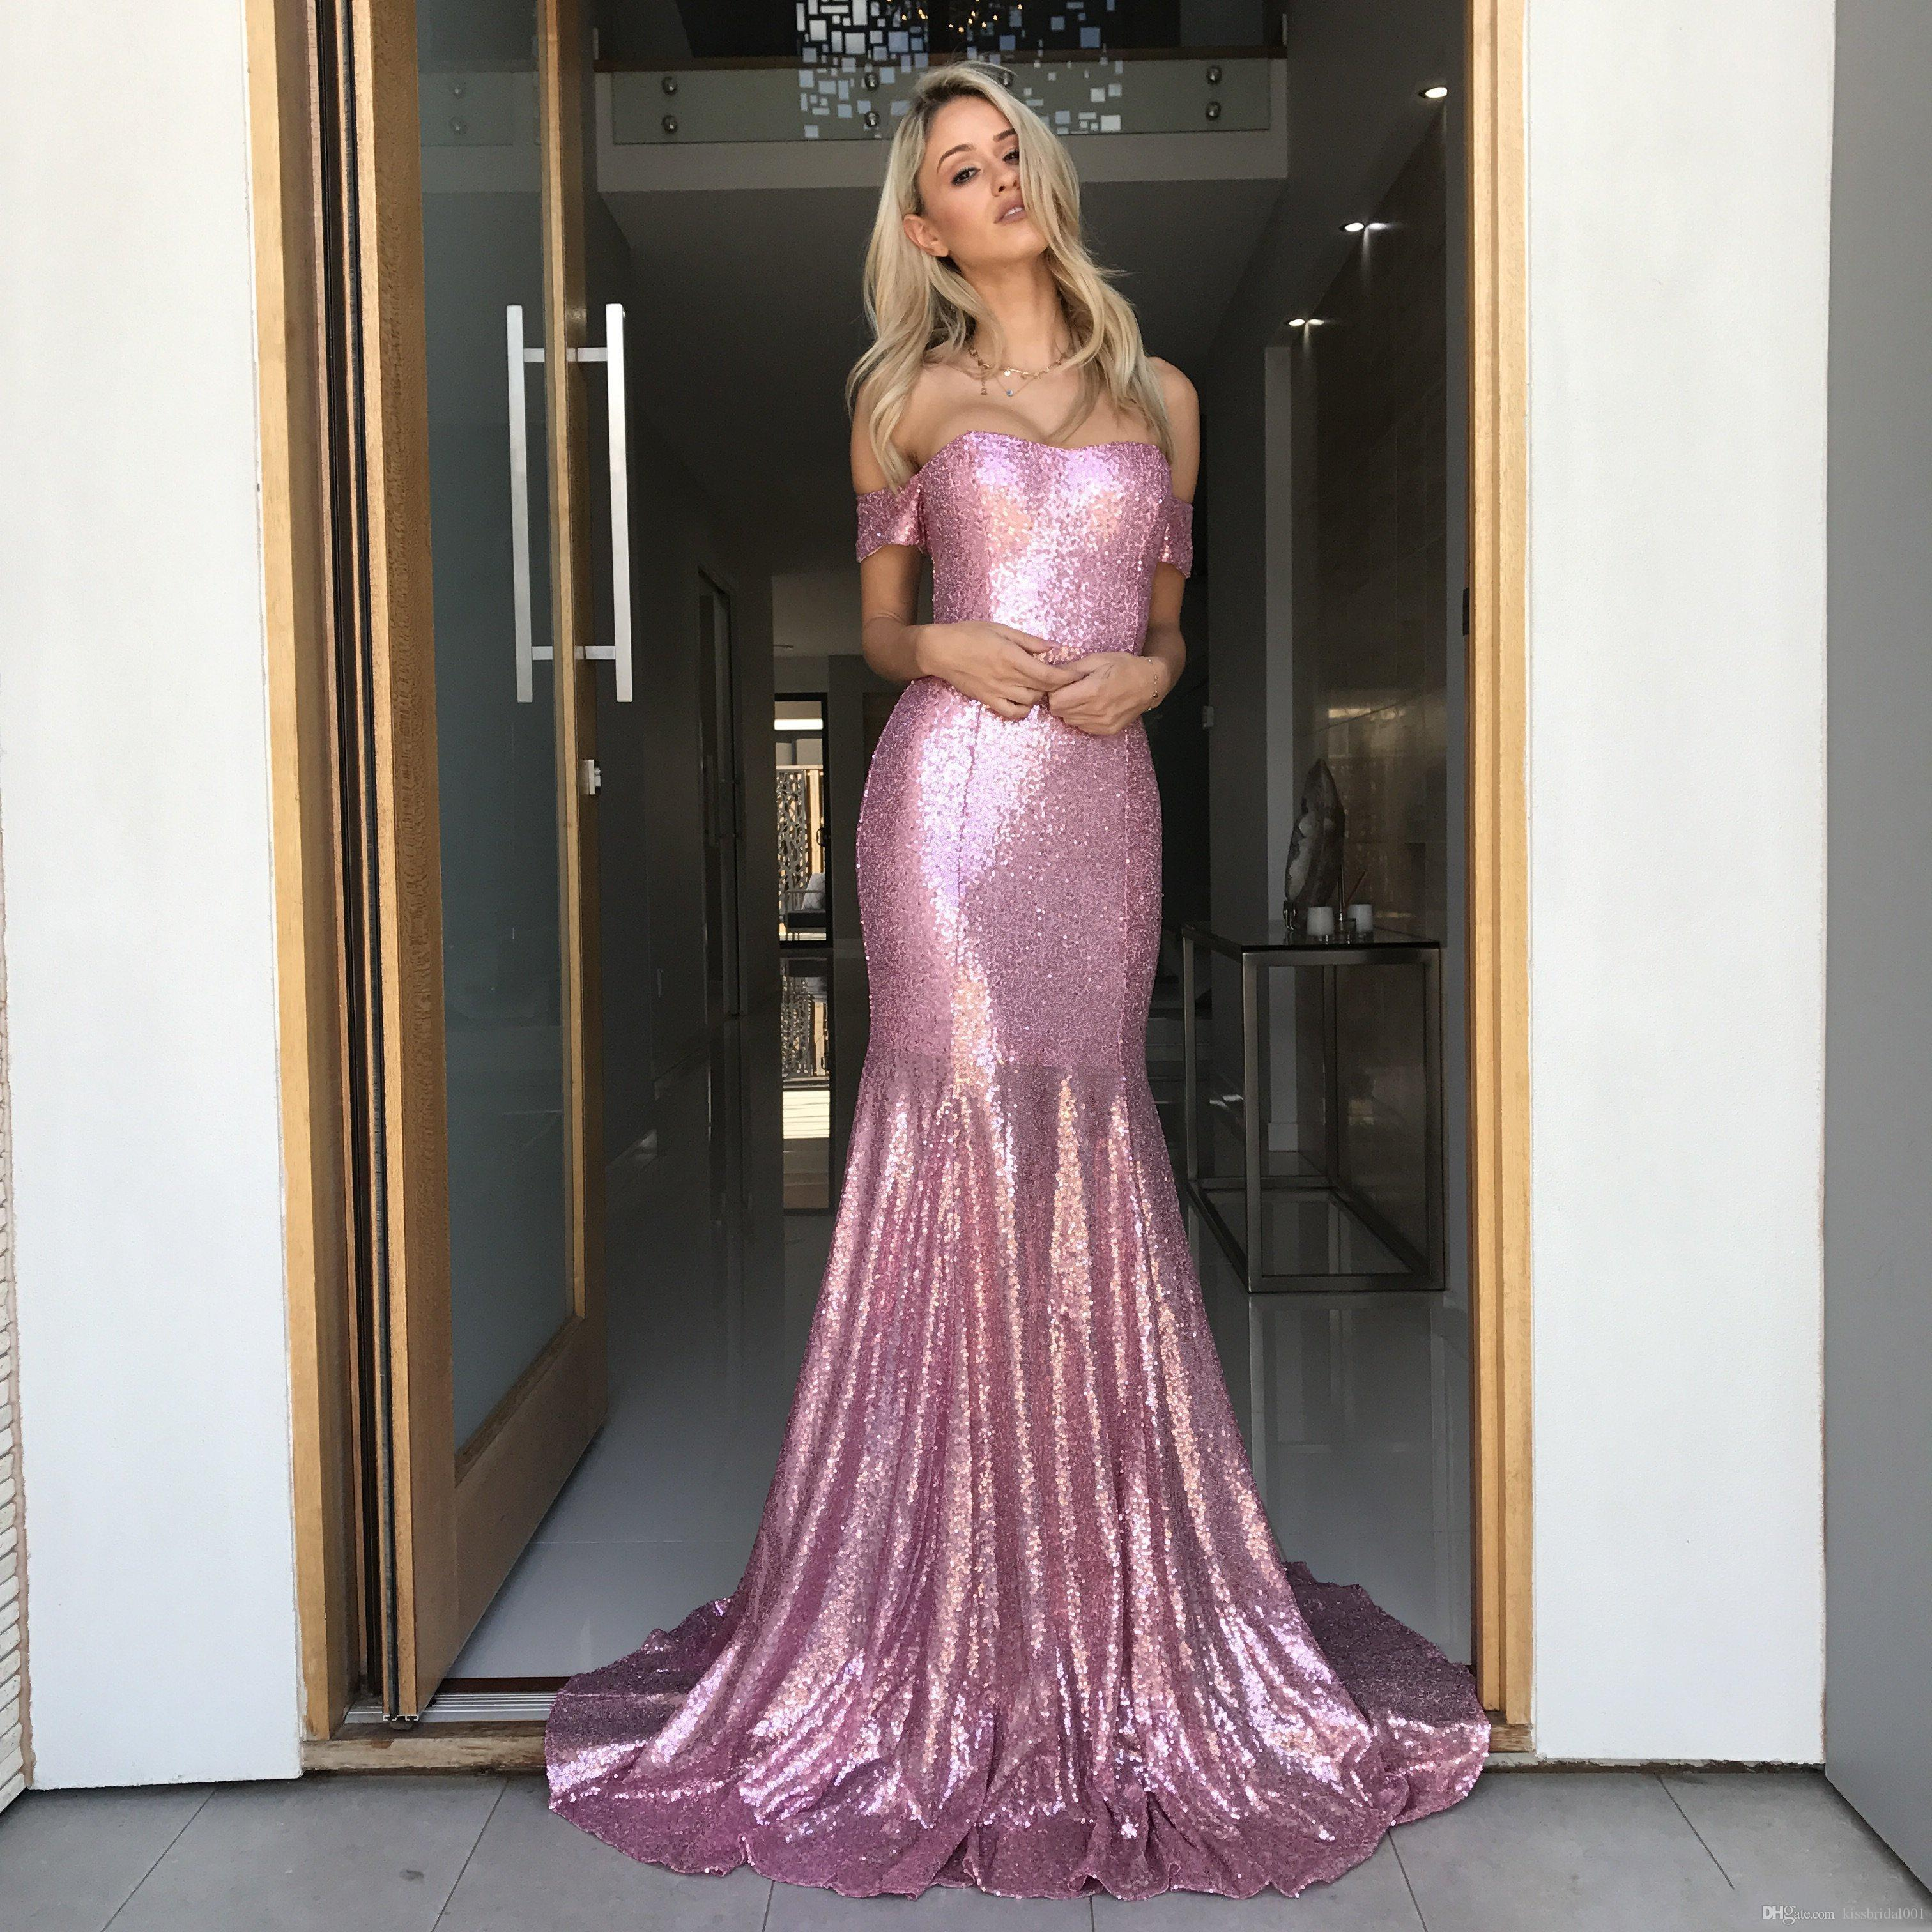 0daed6851cf Cheap Prom Dresses 2019 Mermaid Off The Shoulder Pink Sequin Evening Gowns  Appliques Cocktail Party Ball Bridesmaid Dress Formal Gown Green Prom  Dresses ...